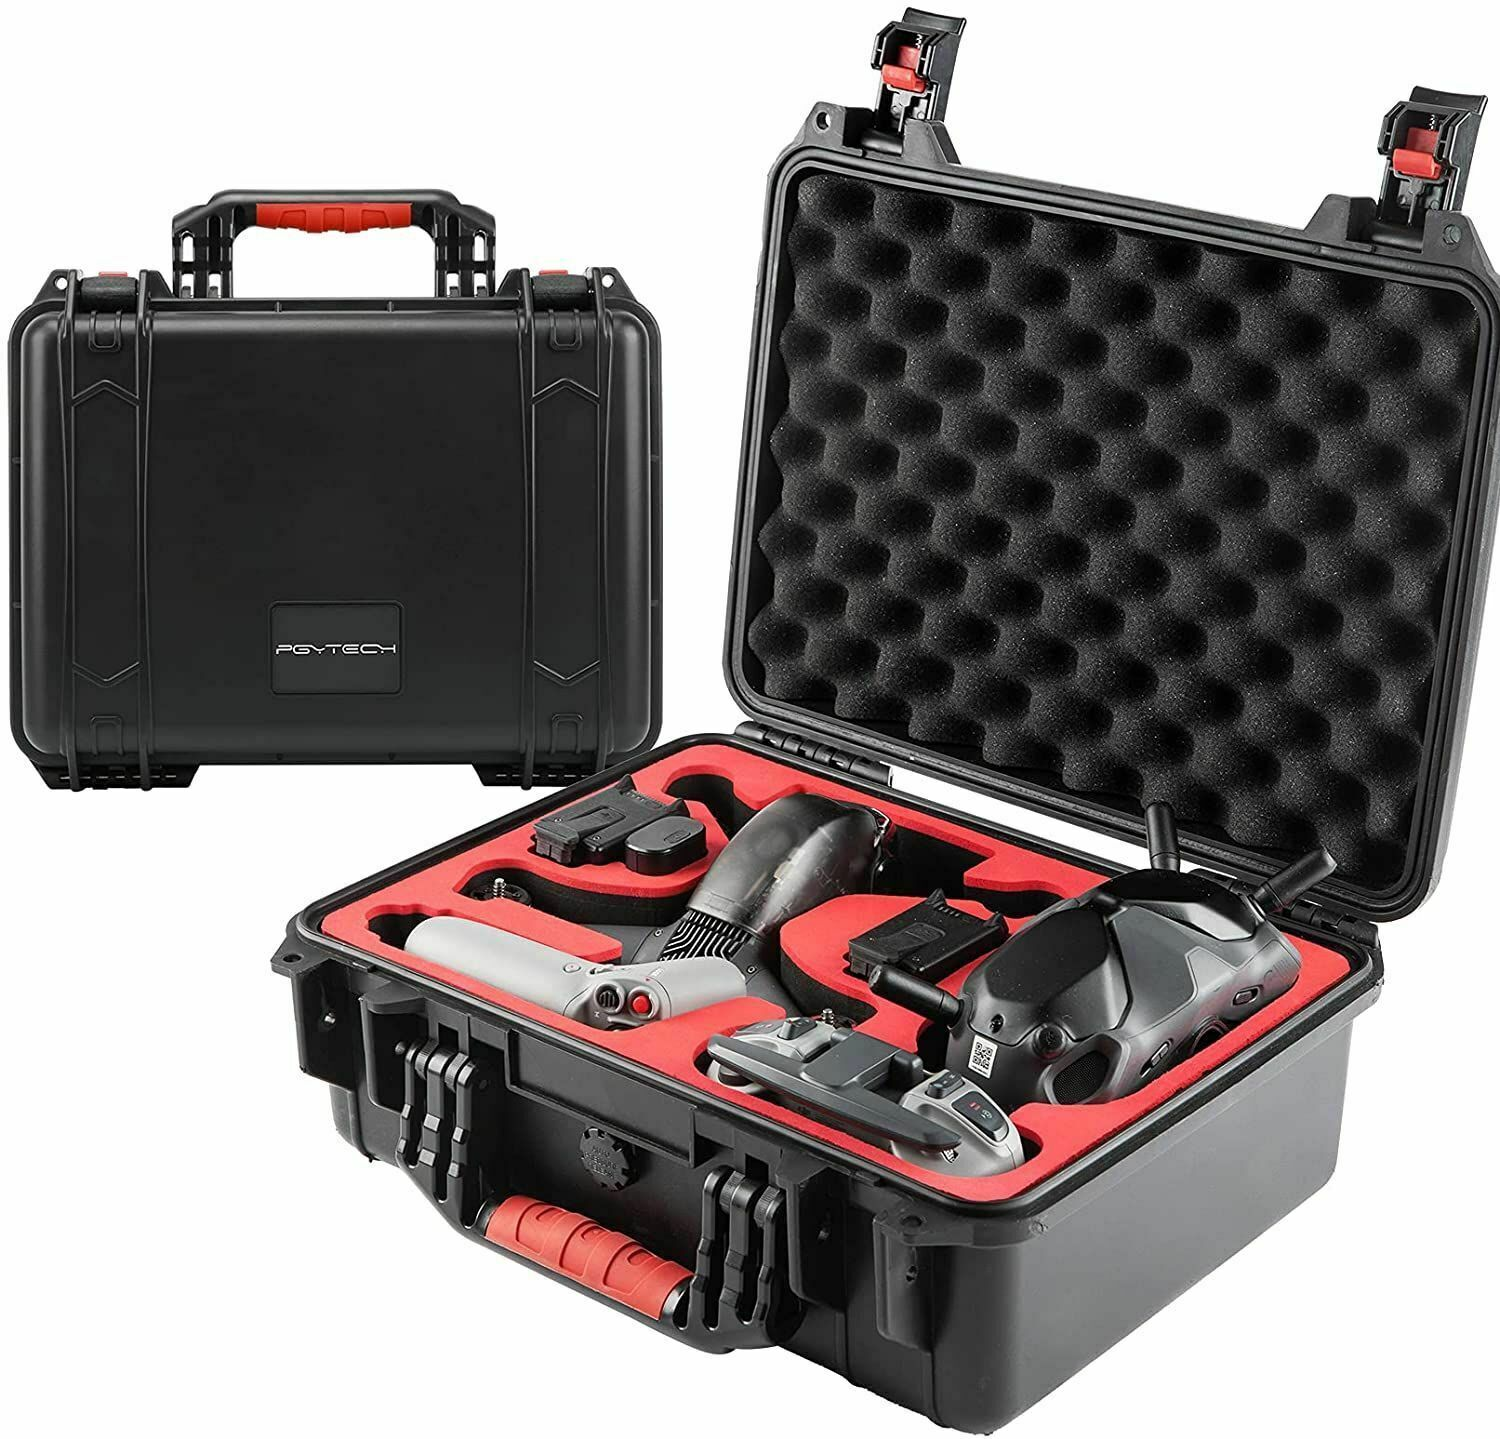 PGYTECH Safety Carrying Case Waterproof Hard Case for DJI FPV